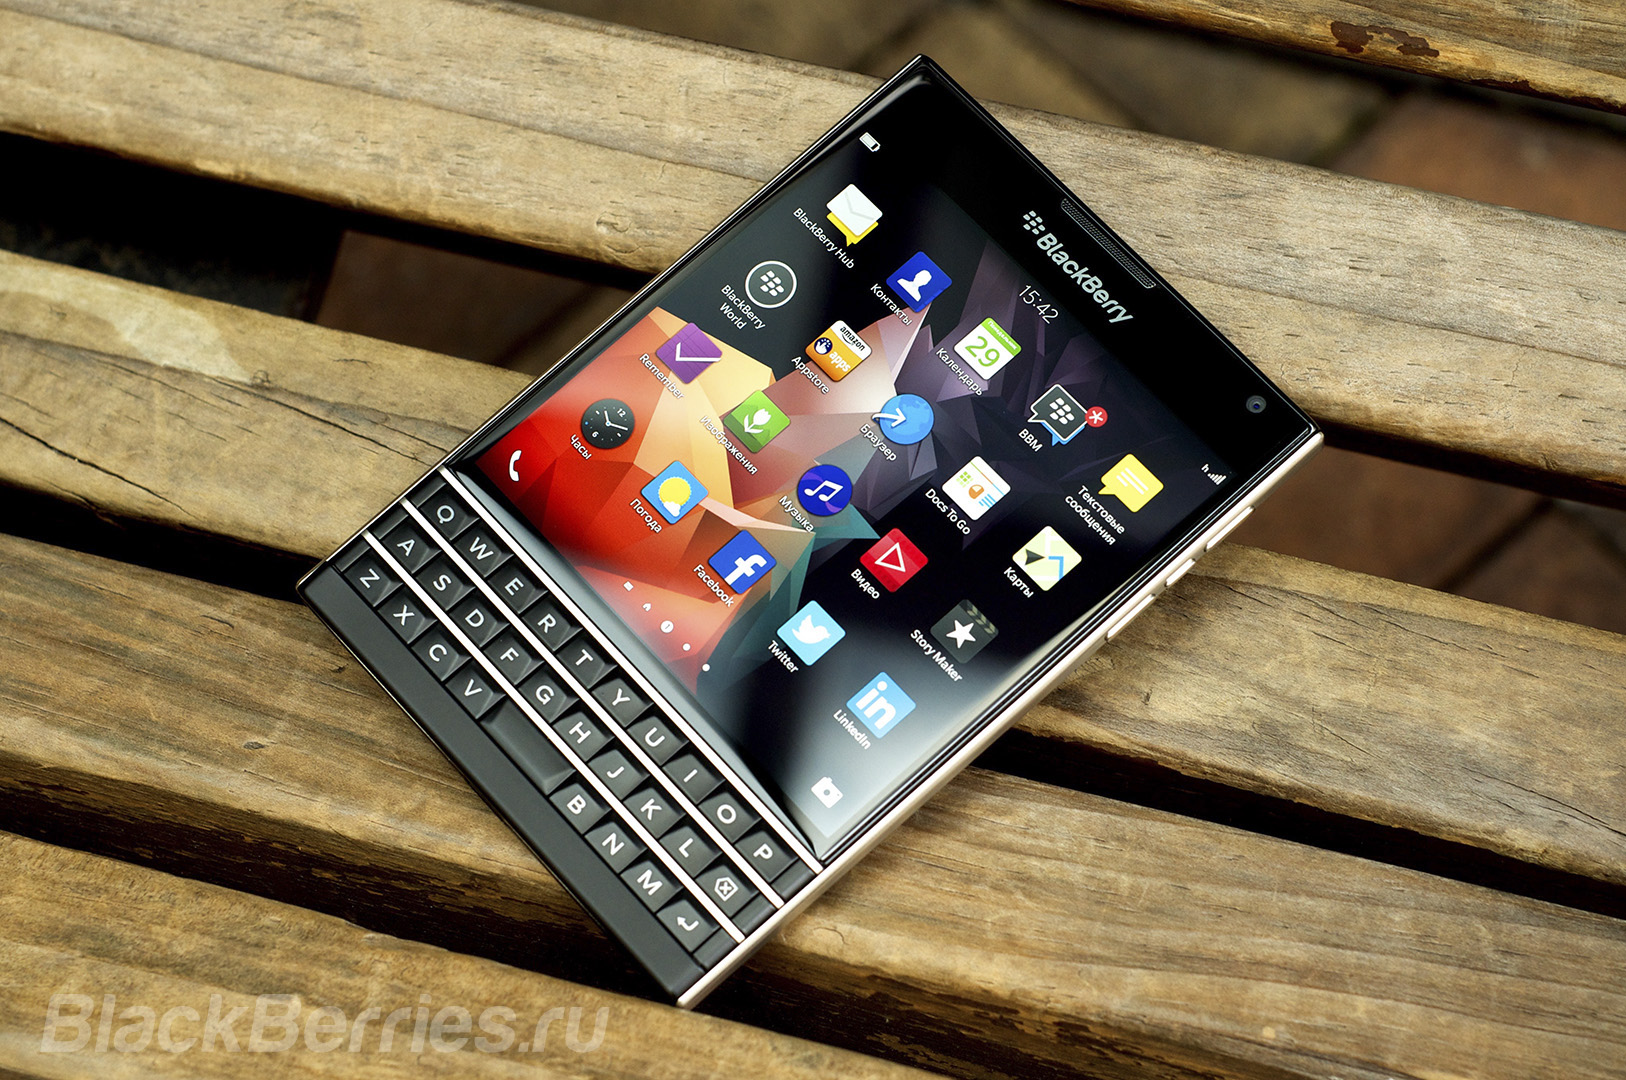 BlackBerry-Passport-Review-2014-13